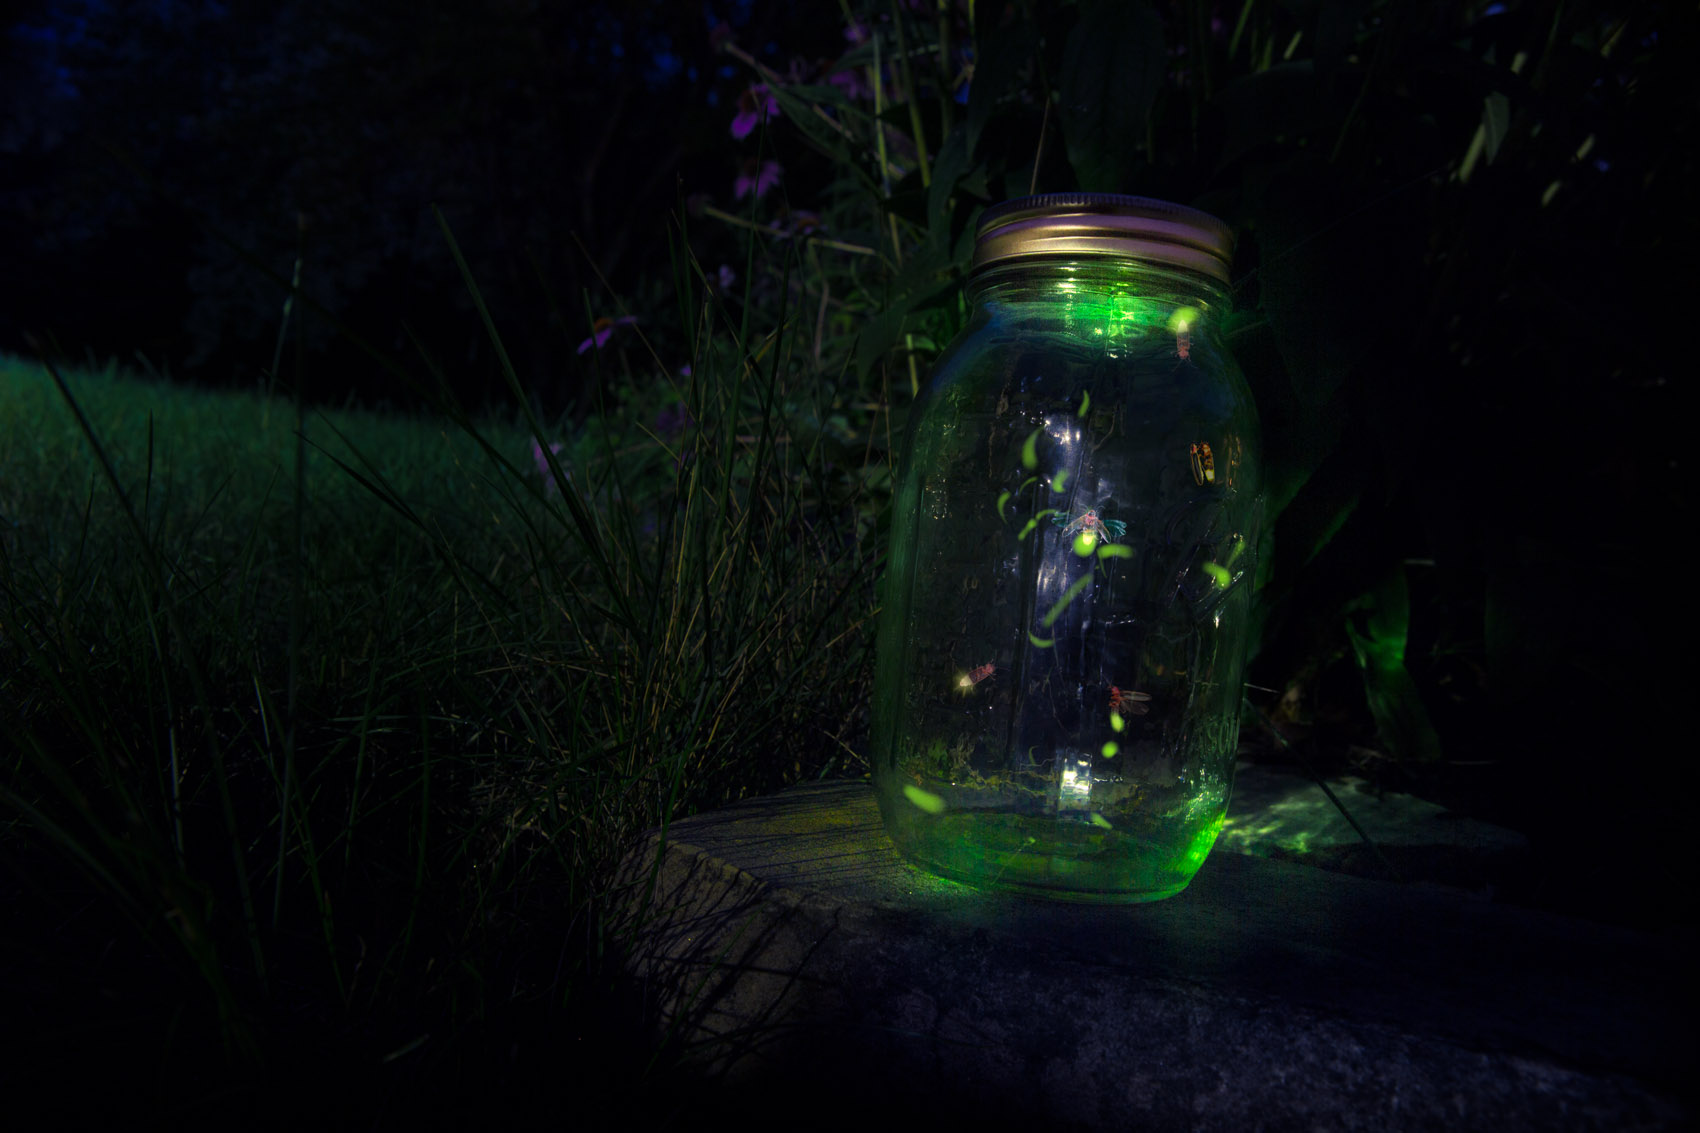 A mason jar of flickering fireflies